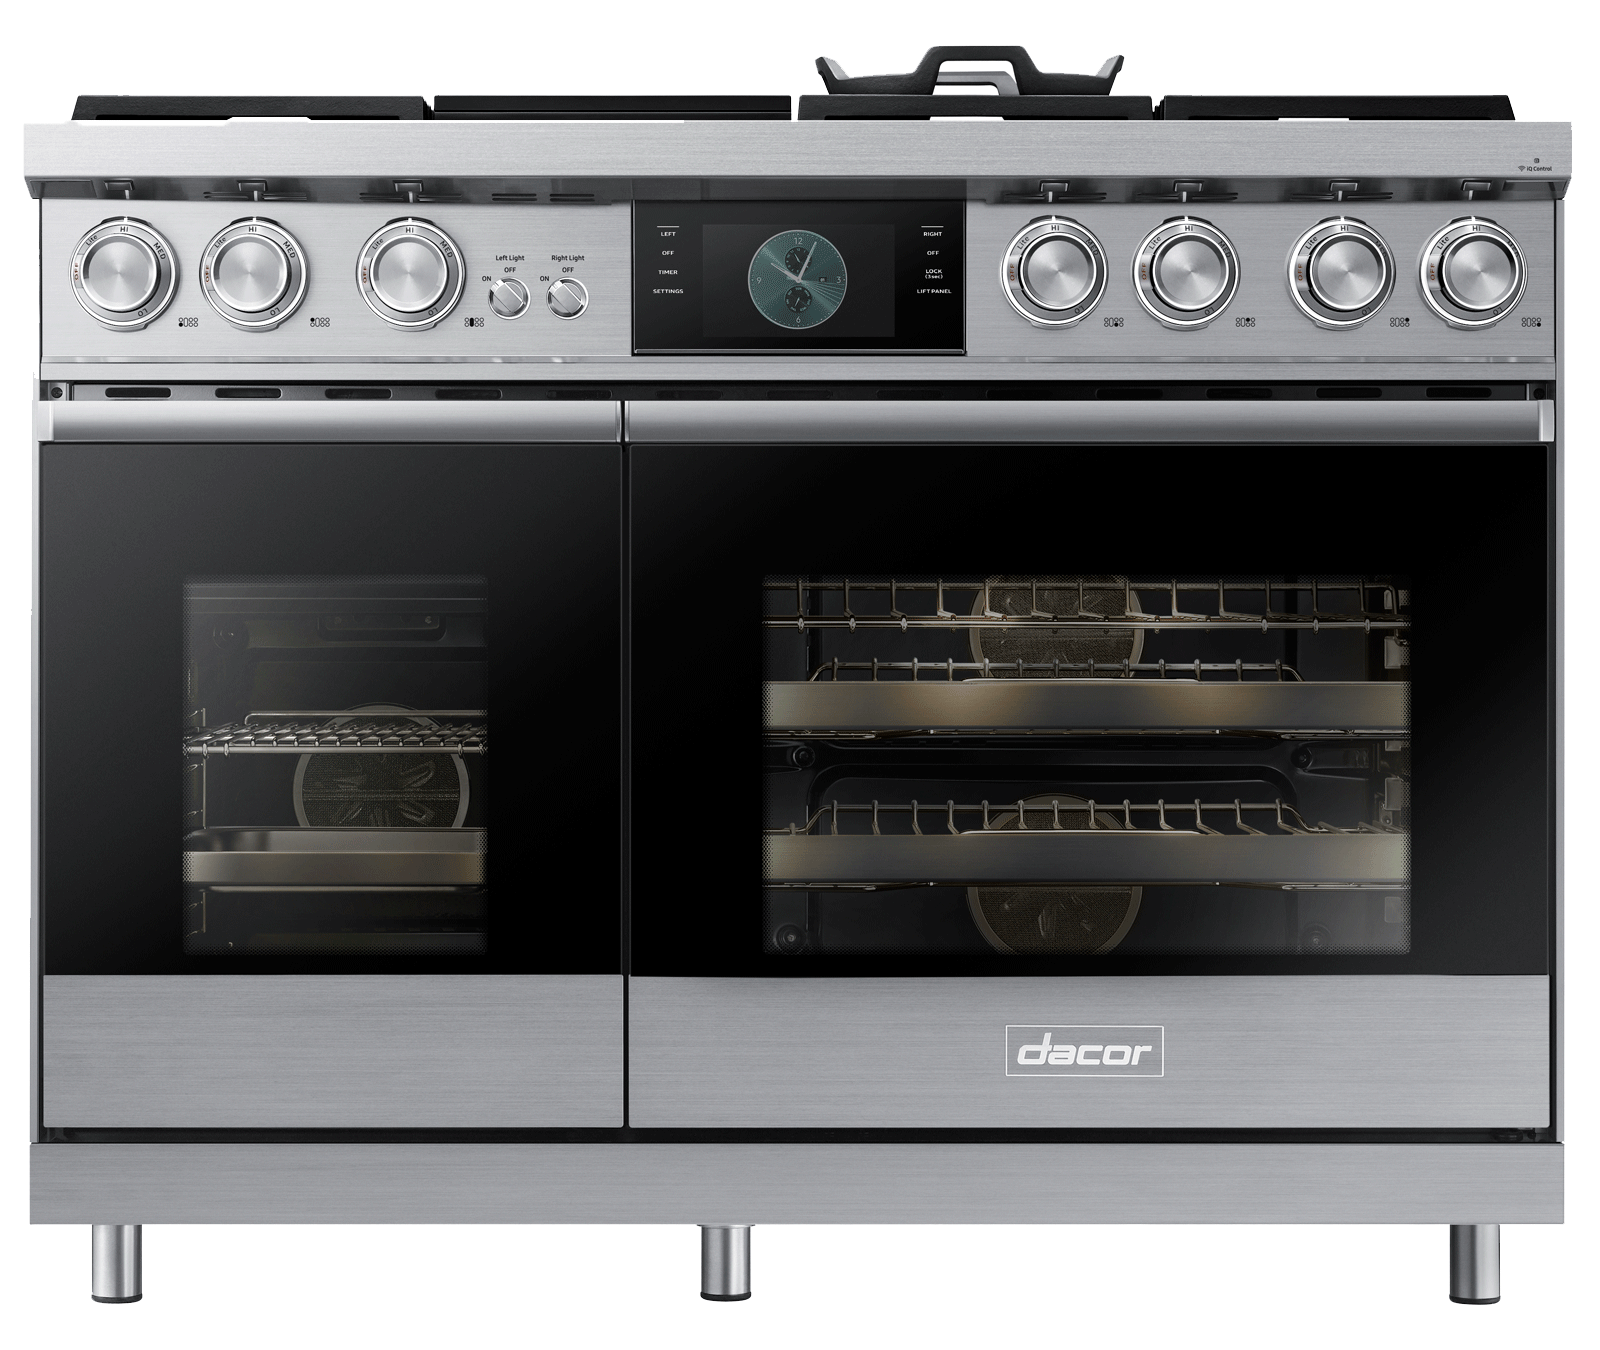 Dacor dop48m96das modernist silver stainless 48 dual fuel for Dacor 48 dual fuel range